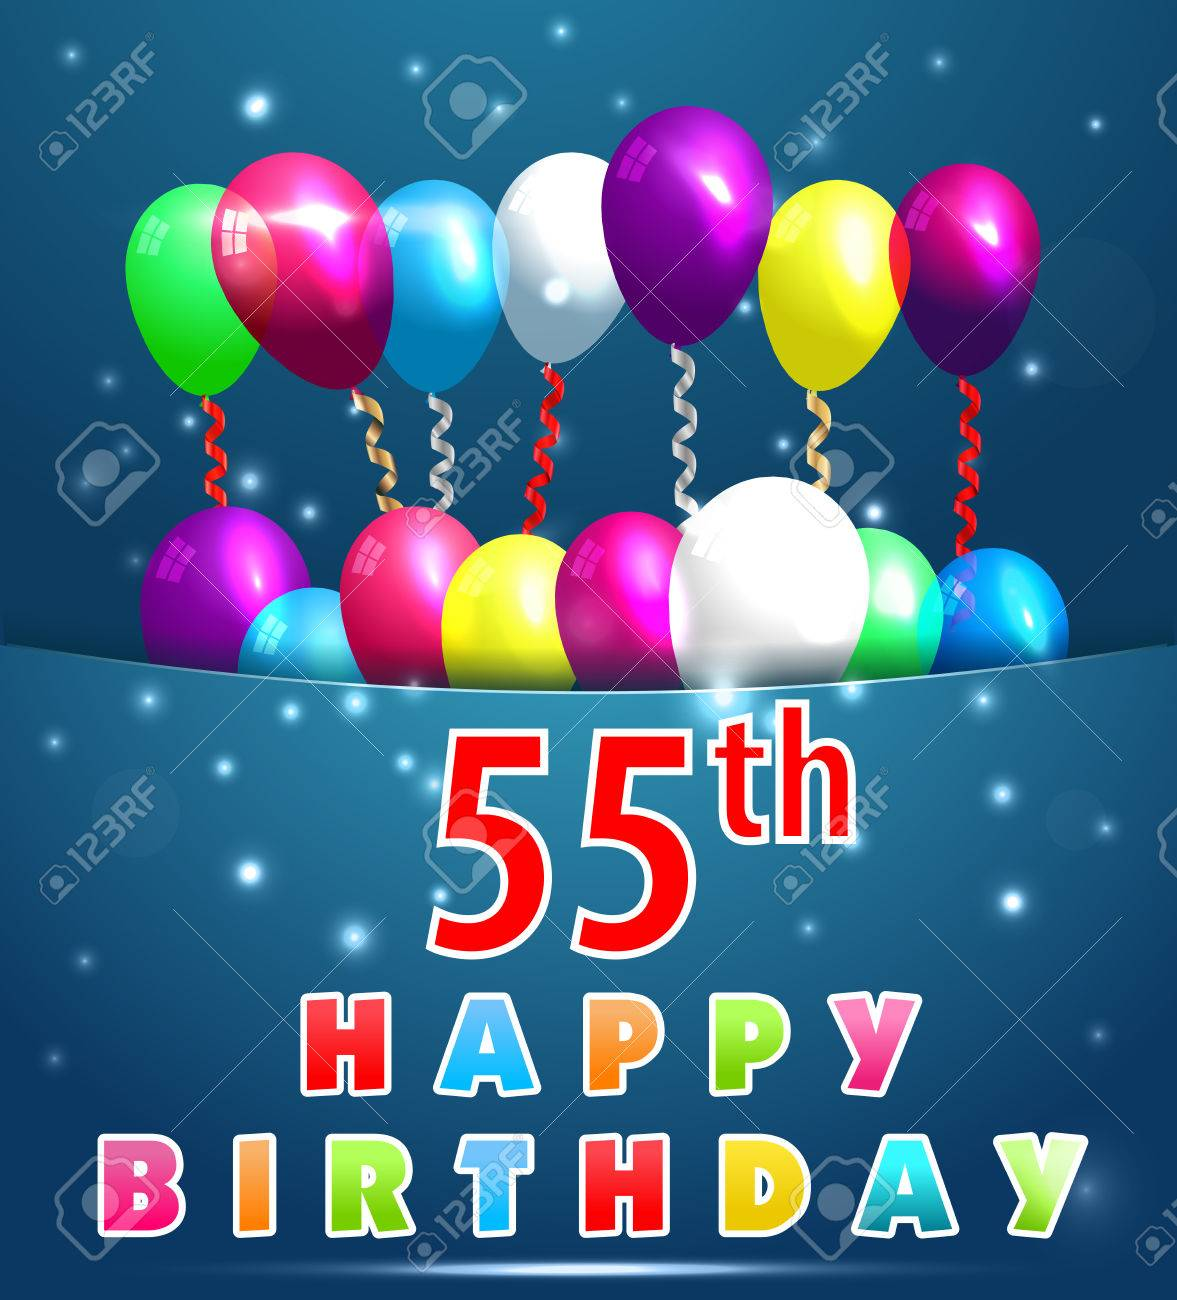 55 Year Happy Birthday Card With Balloons And Ribbons 55th Stock Vector